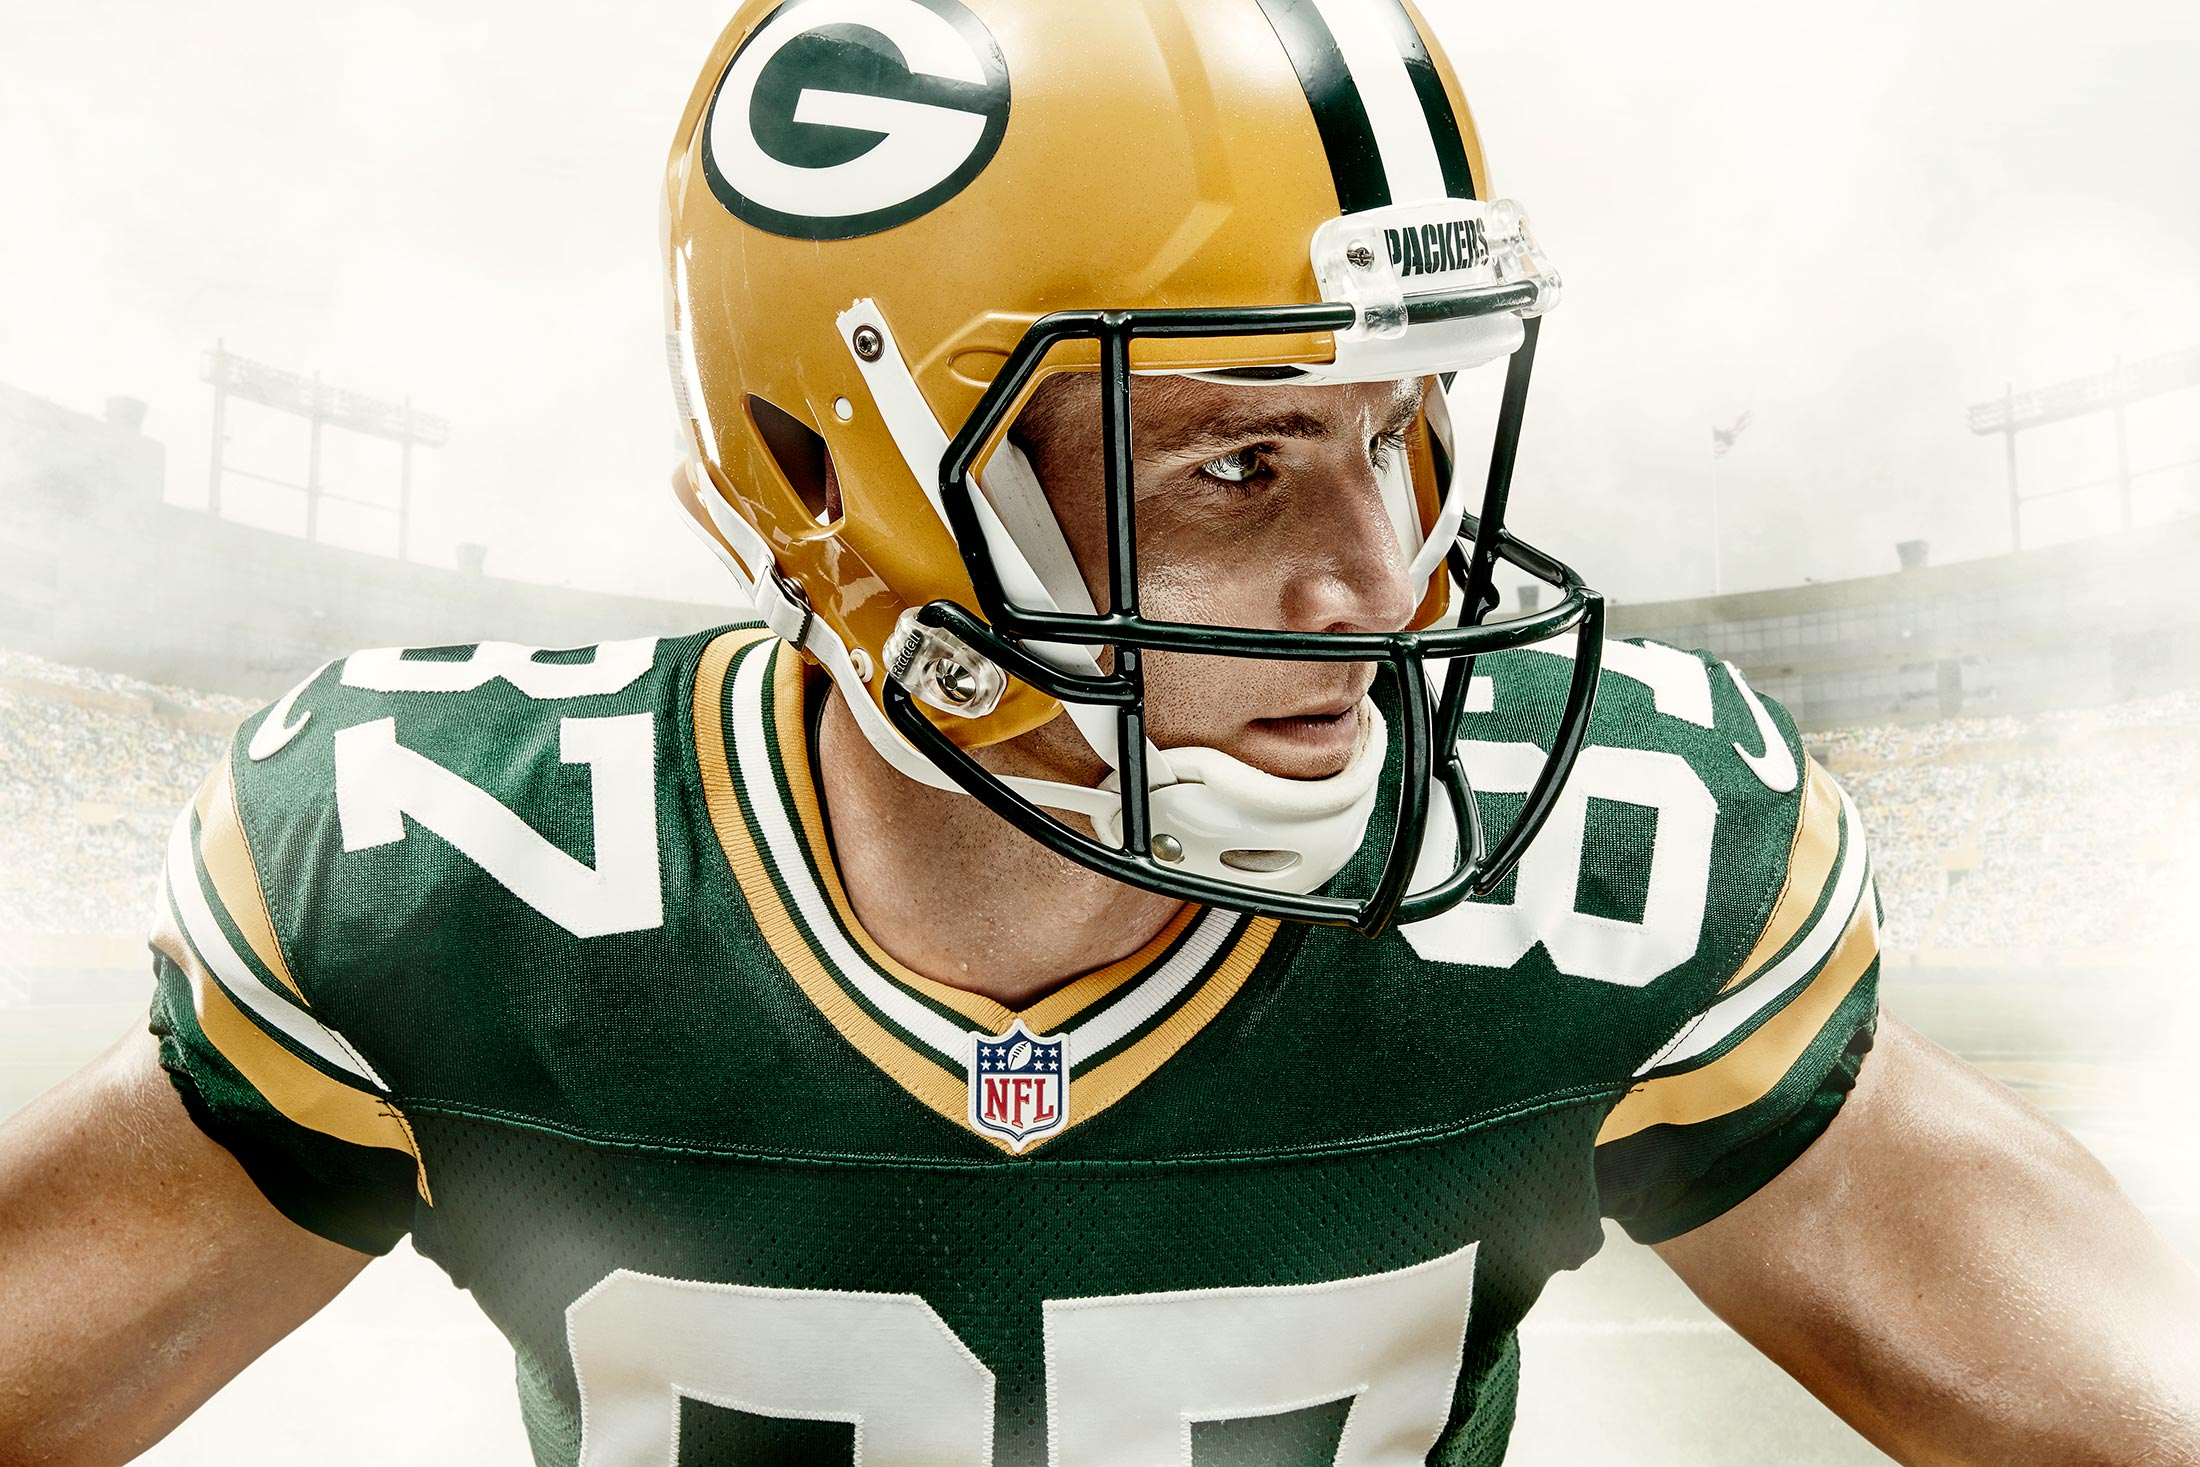 JORDY NELSON - NFL - GREEN BAY PACKERS